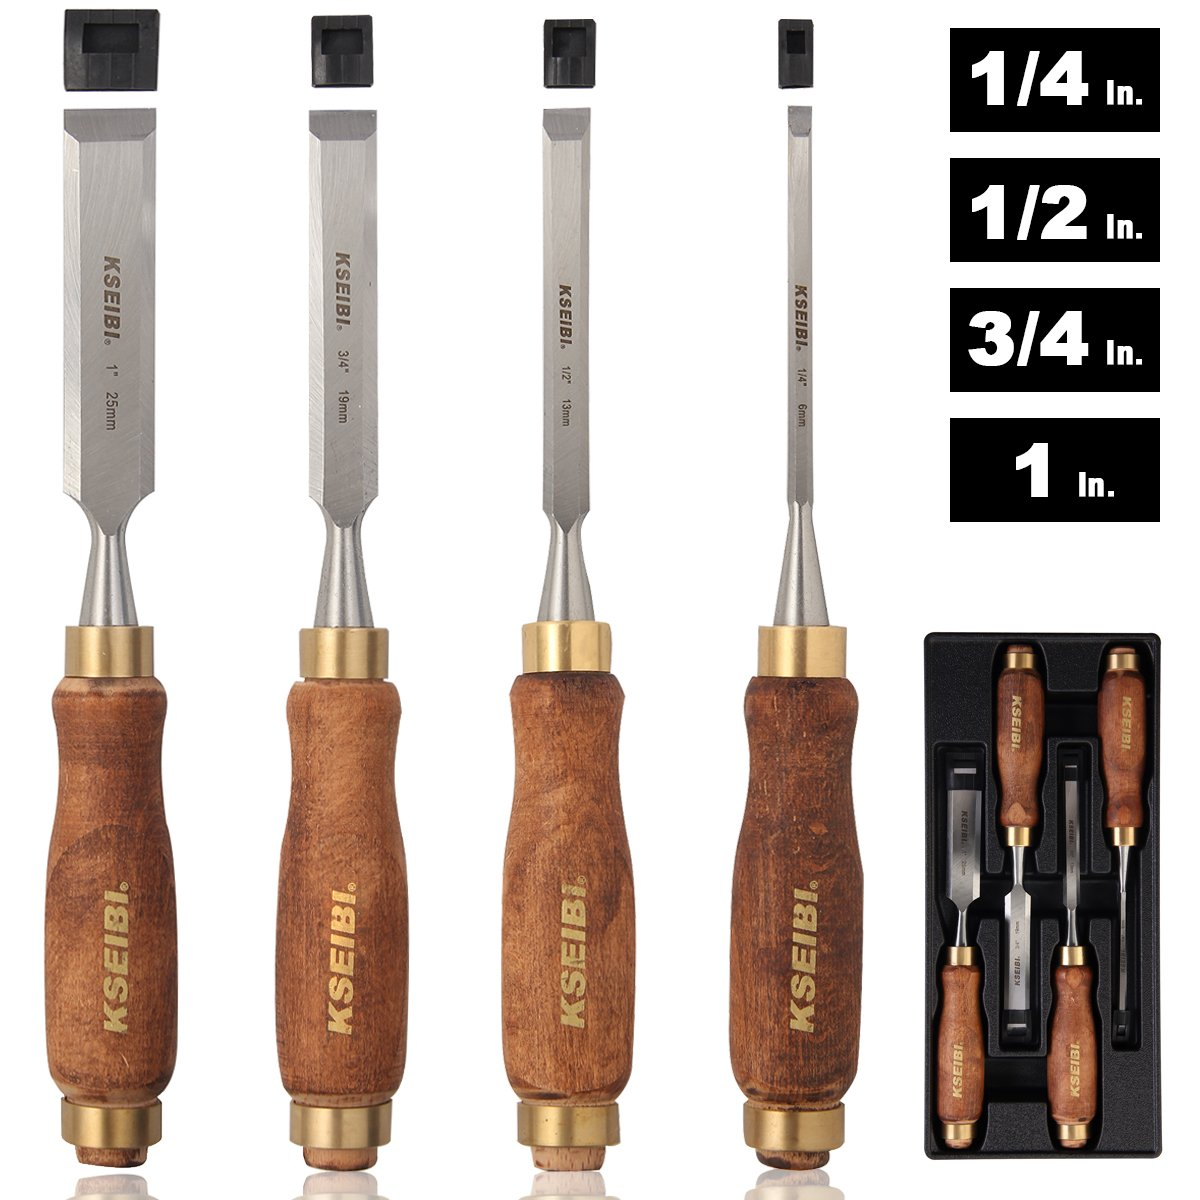 Premium Wood Chisel Set Chrome Manganese Blades for Woodworking, Carving, Woodworking Chisels with Wooden Handles (4PC Set with Tray Box Organizer)